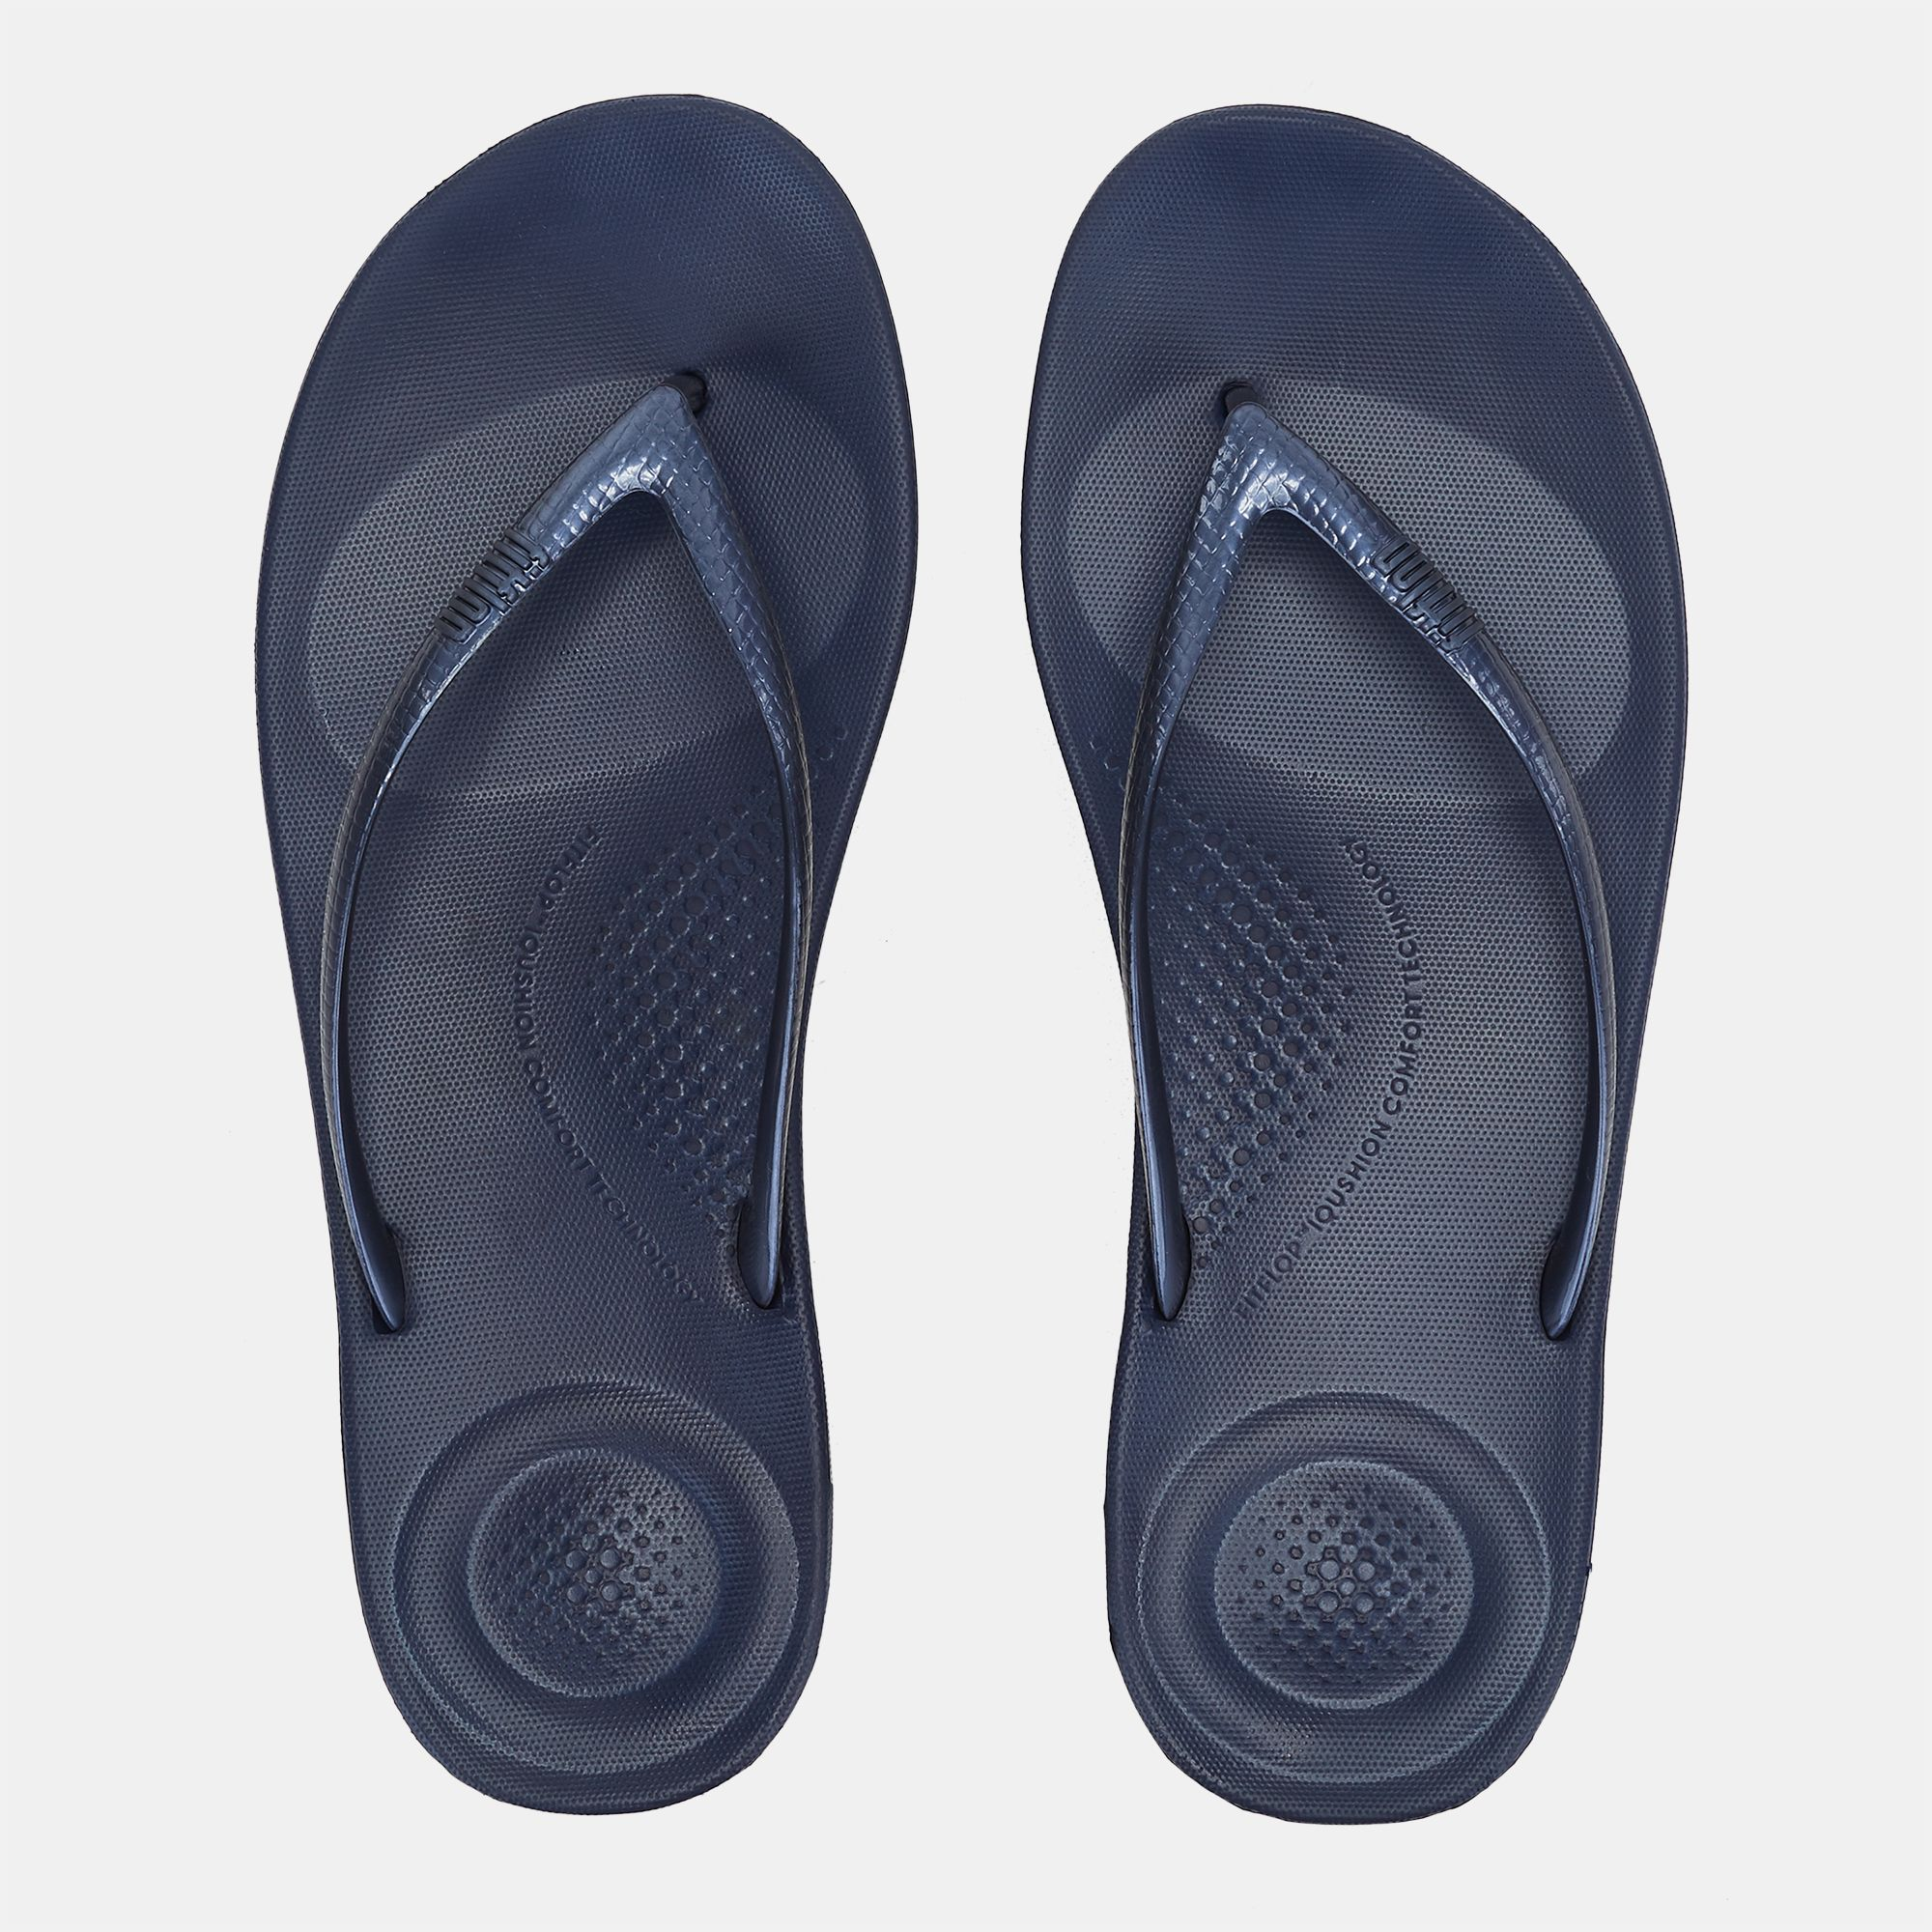 964671c8563 FitFlop iQushion™ Ergonomic Flip Flops